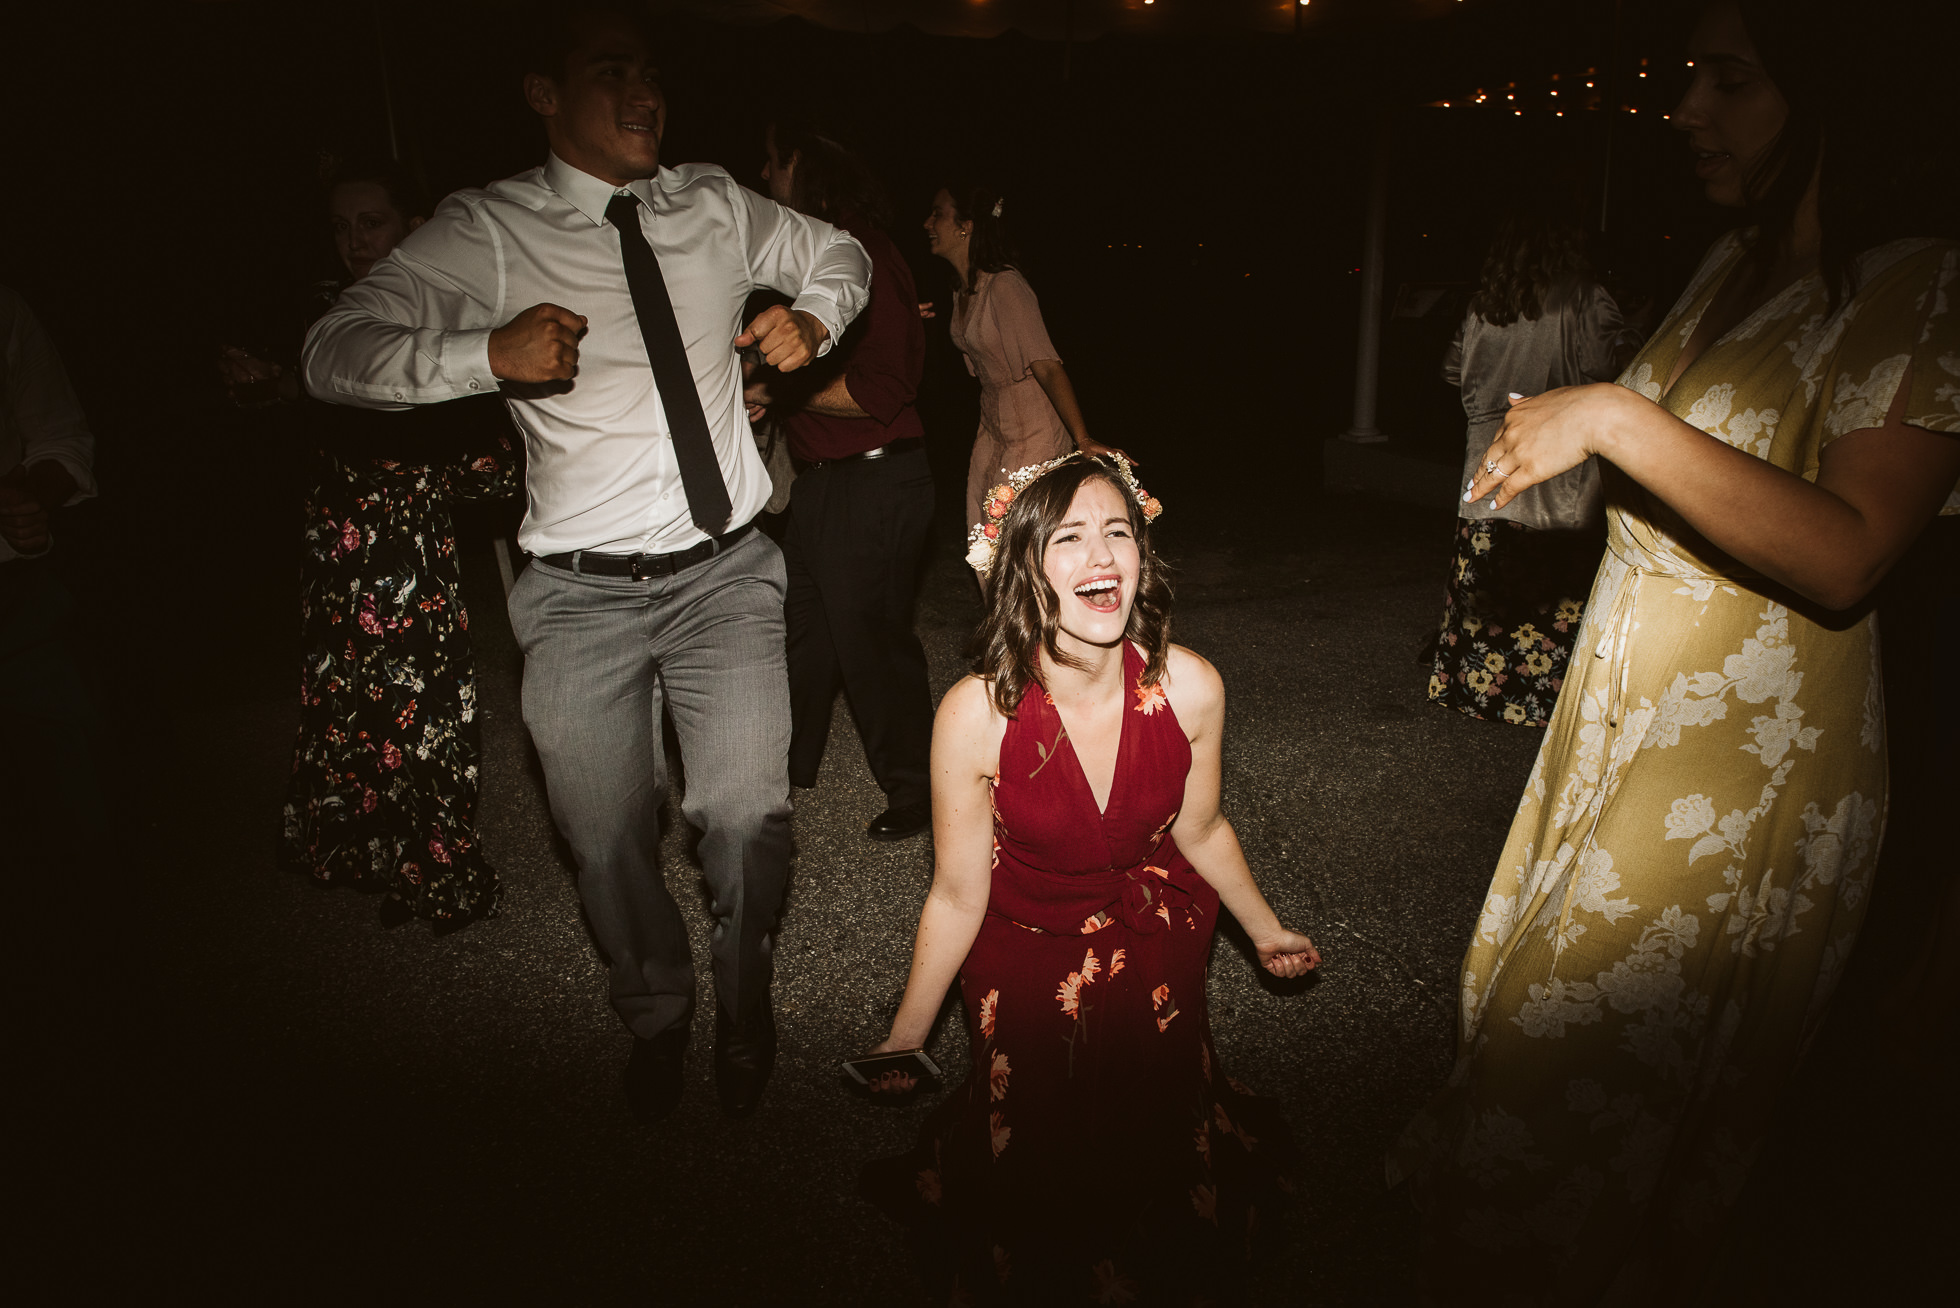 wild wedding dancing